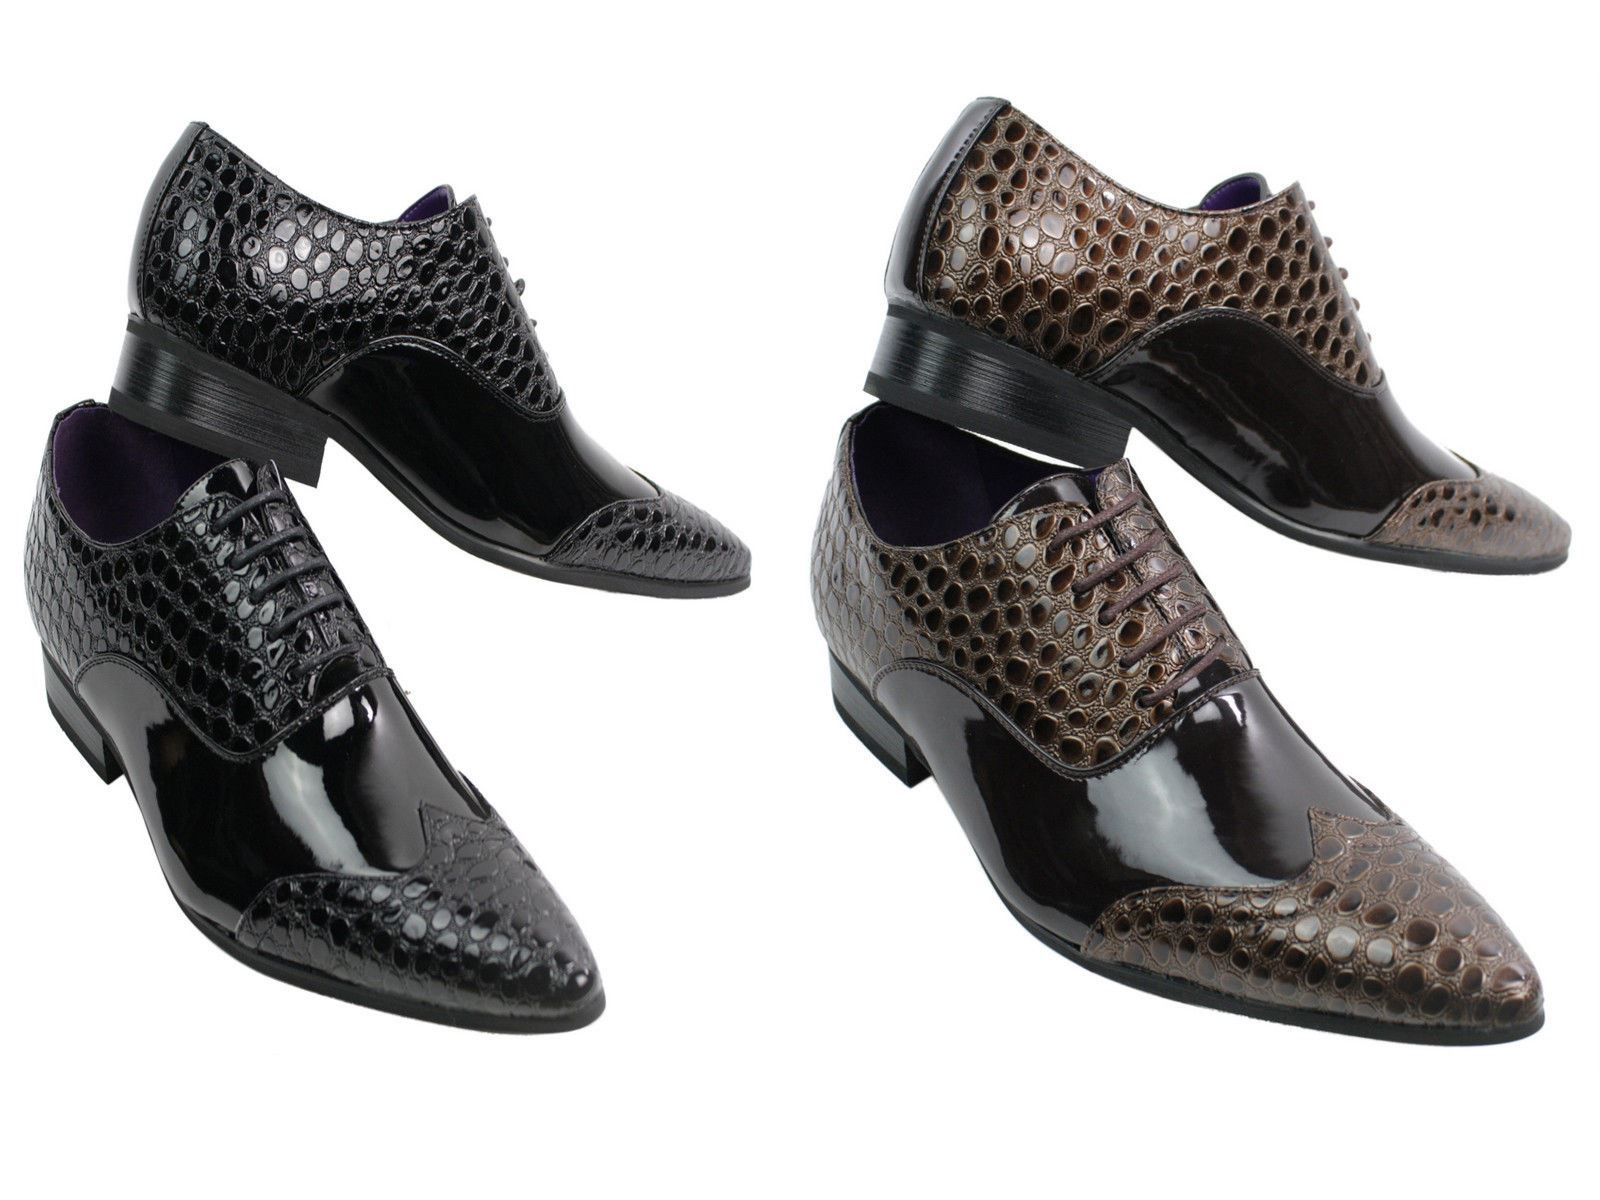 Chaussures Homme Crocodile Cuir Chaussures Homme Crocodile